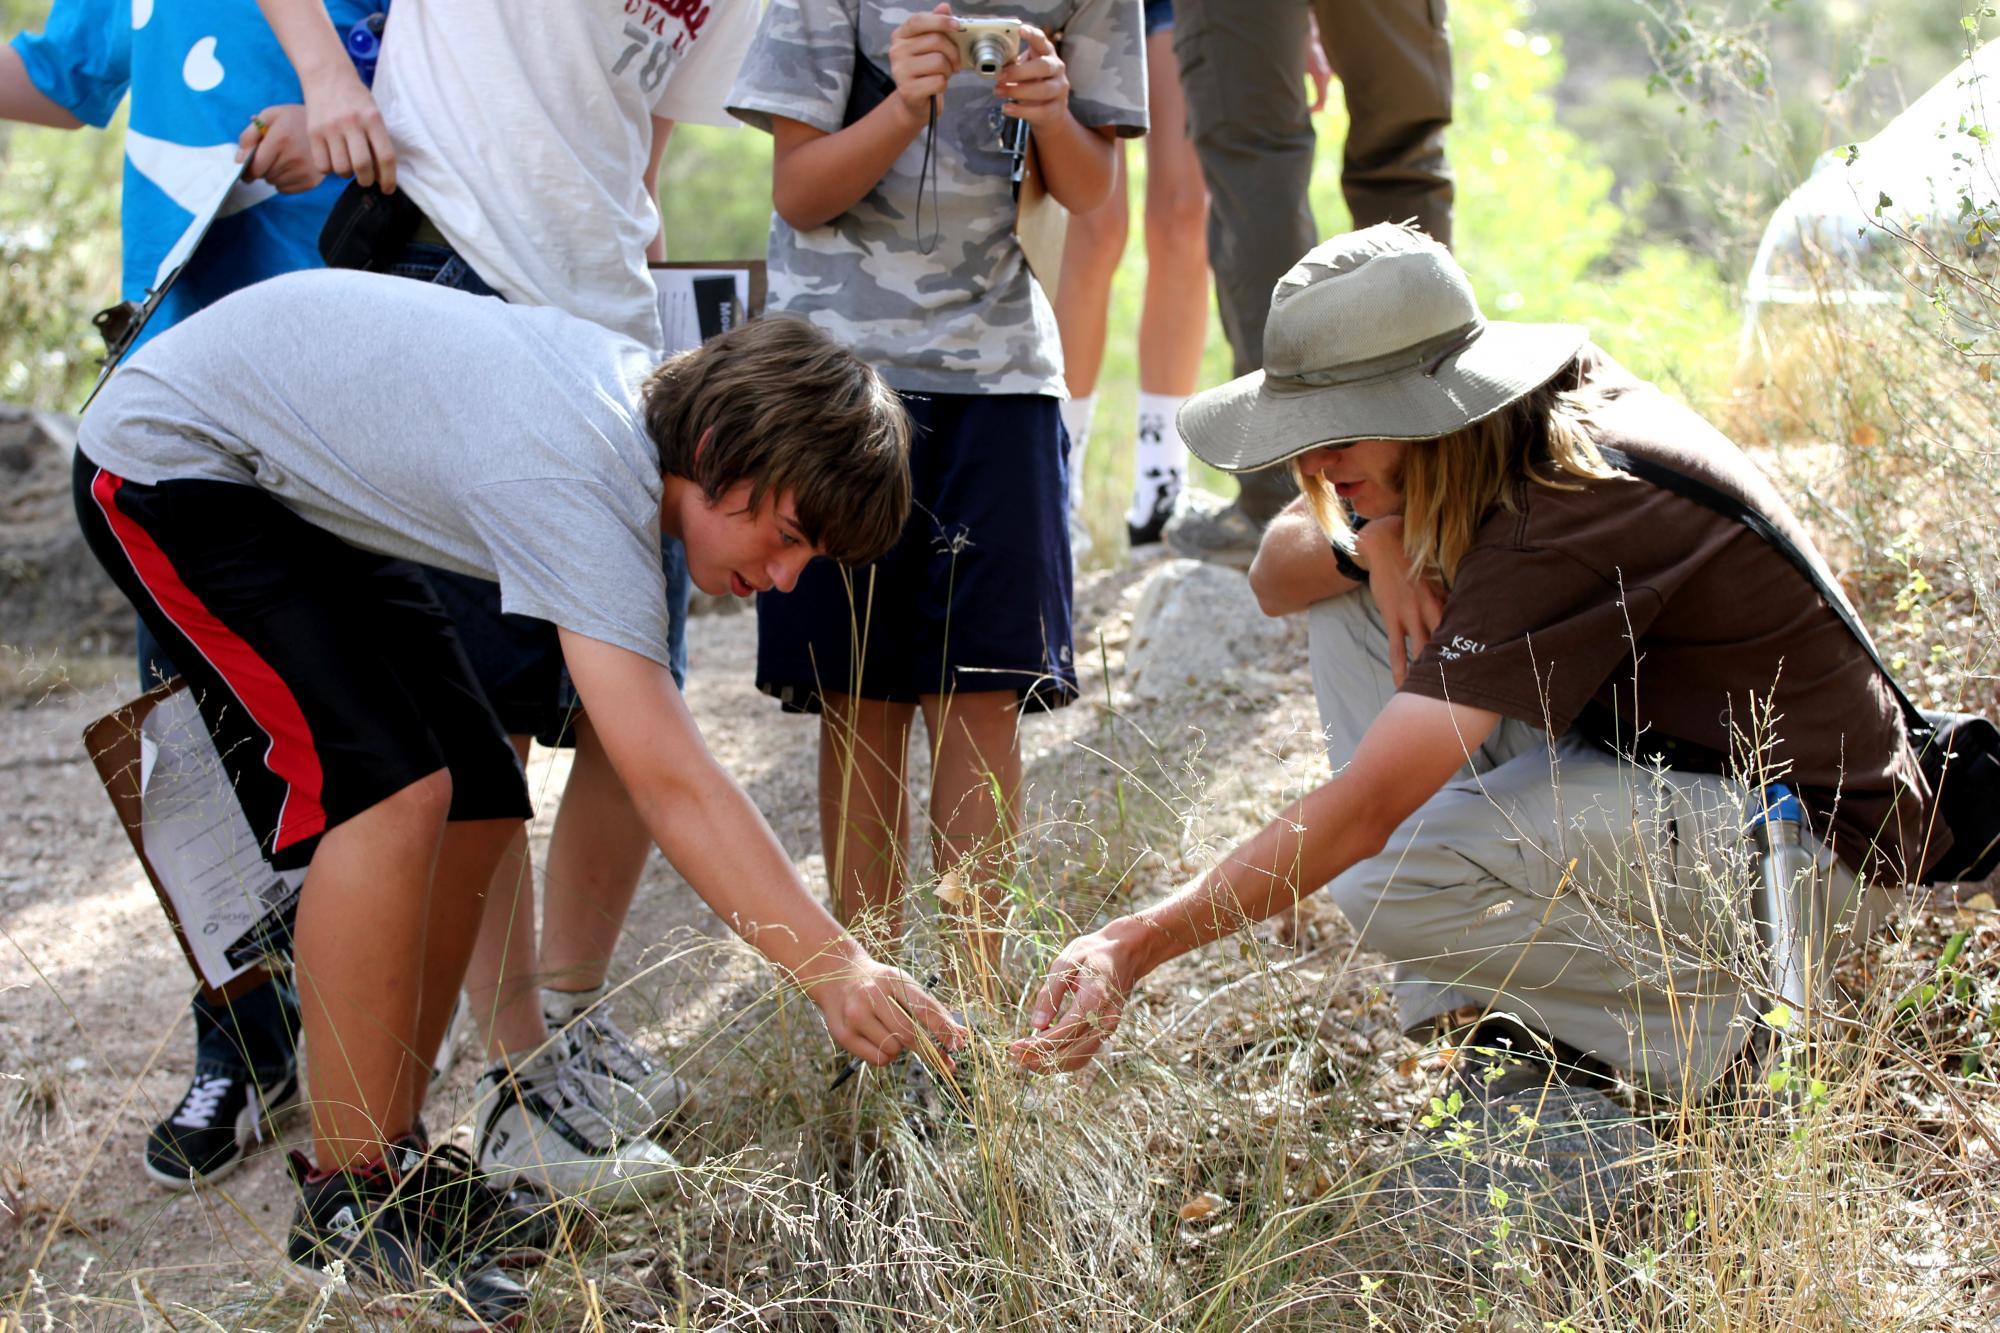 """""""Find an animal hole, find three types of cactus, find a rock that sparkles and tell me what mineral makes it sparkle."""" Pacifica Sommers gave the students a scavenger hunt for natural treasures to complete as they journeyed up the mountain."""